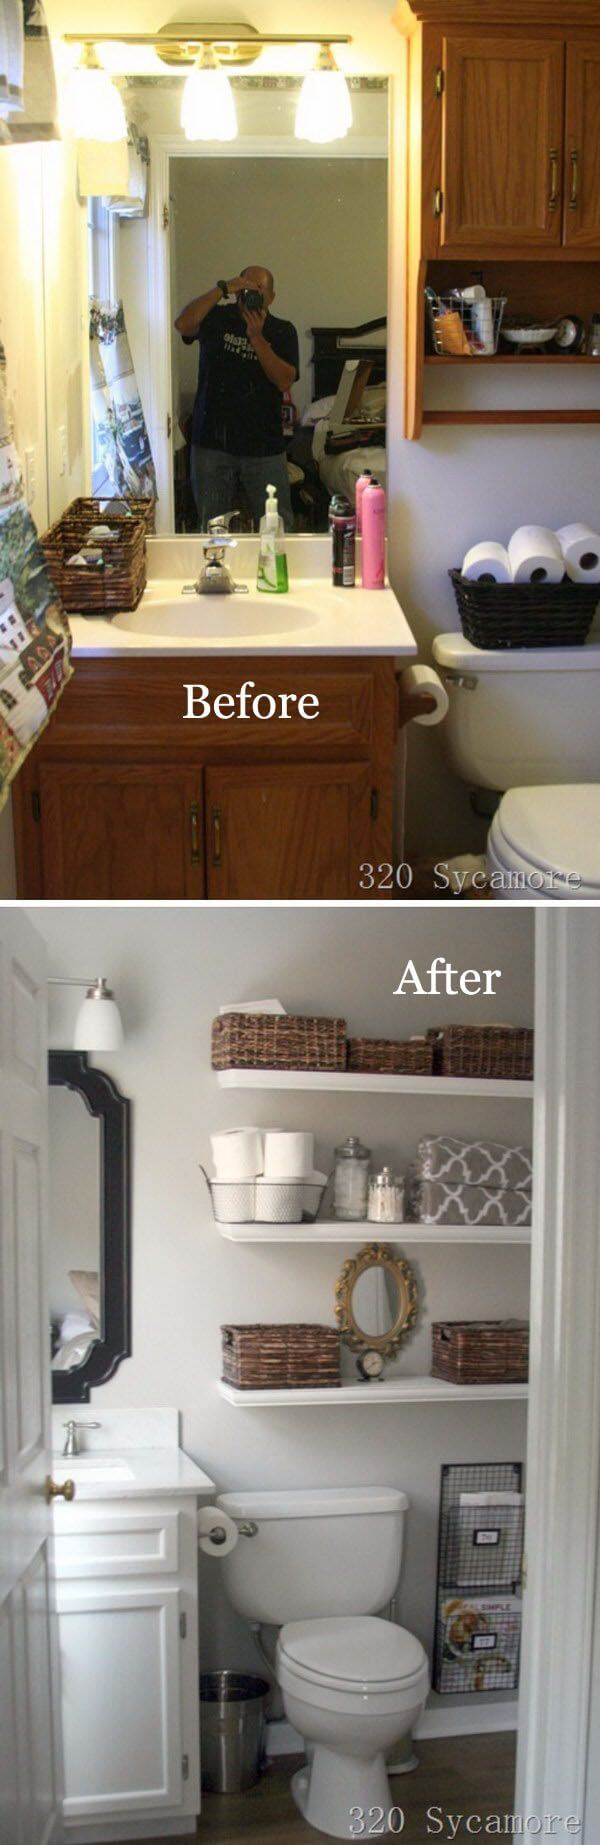 Small Bathroom Makeover Ideas on small bathroom makeovers before and after, small bathroom renovations, small bathroom kitchen ideas, small bathroom theme ideas, small bedroom decorating ideas, small bathroom makeovers on a budget, bathroom design ideas, small bathroom organizing ideas, small cabinet storage ideas, small modern bathrooms, bathroom remodeling ideas, bathroom tiles ideas, small bathroom laundry room layout, small bathroom fixtures ideas, rustic guest bathroom ideas, aqua and grey bathroom ideas, small retro bathroom ideas, bathtub for small bathrooms ideas, small bathroom makeovers with beadboard, small bathroom transformation,